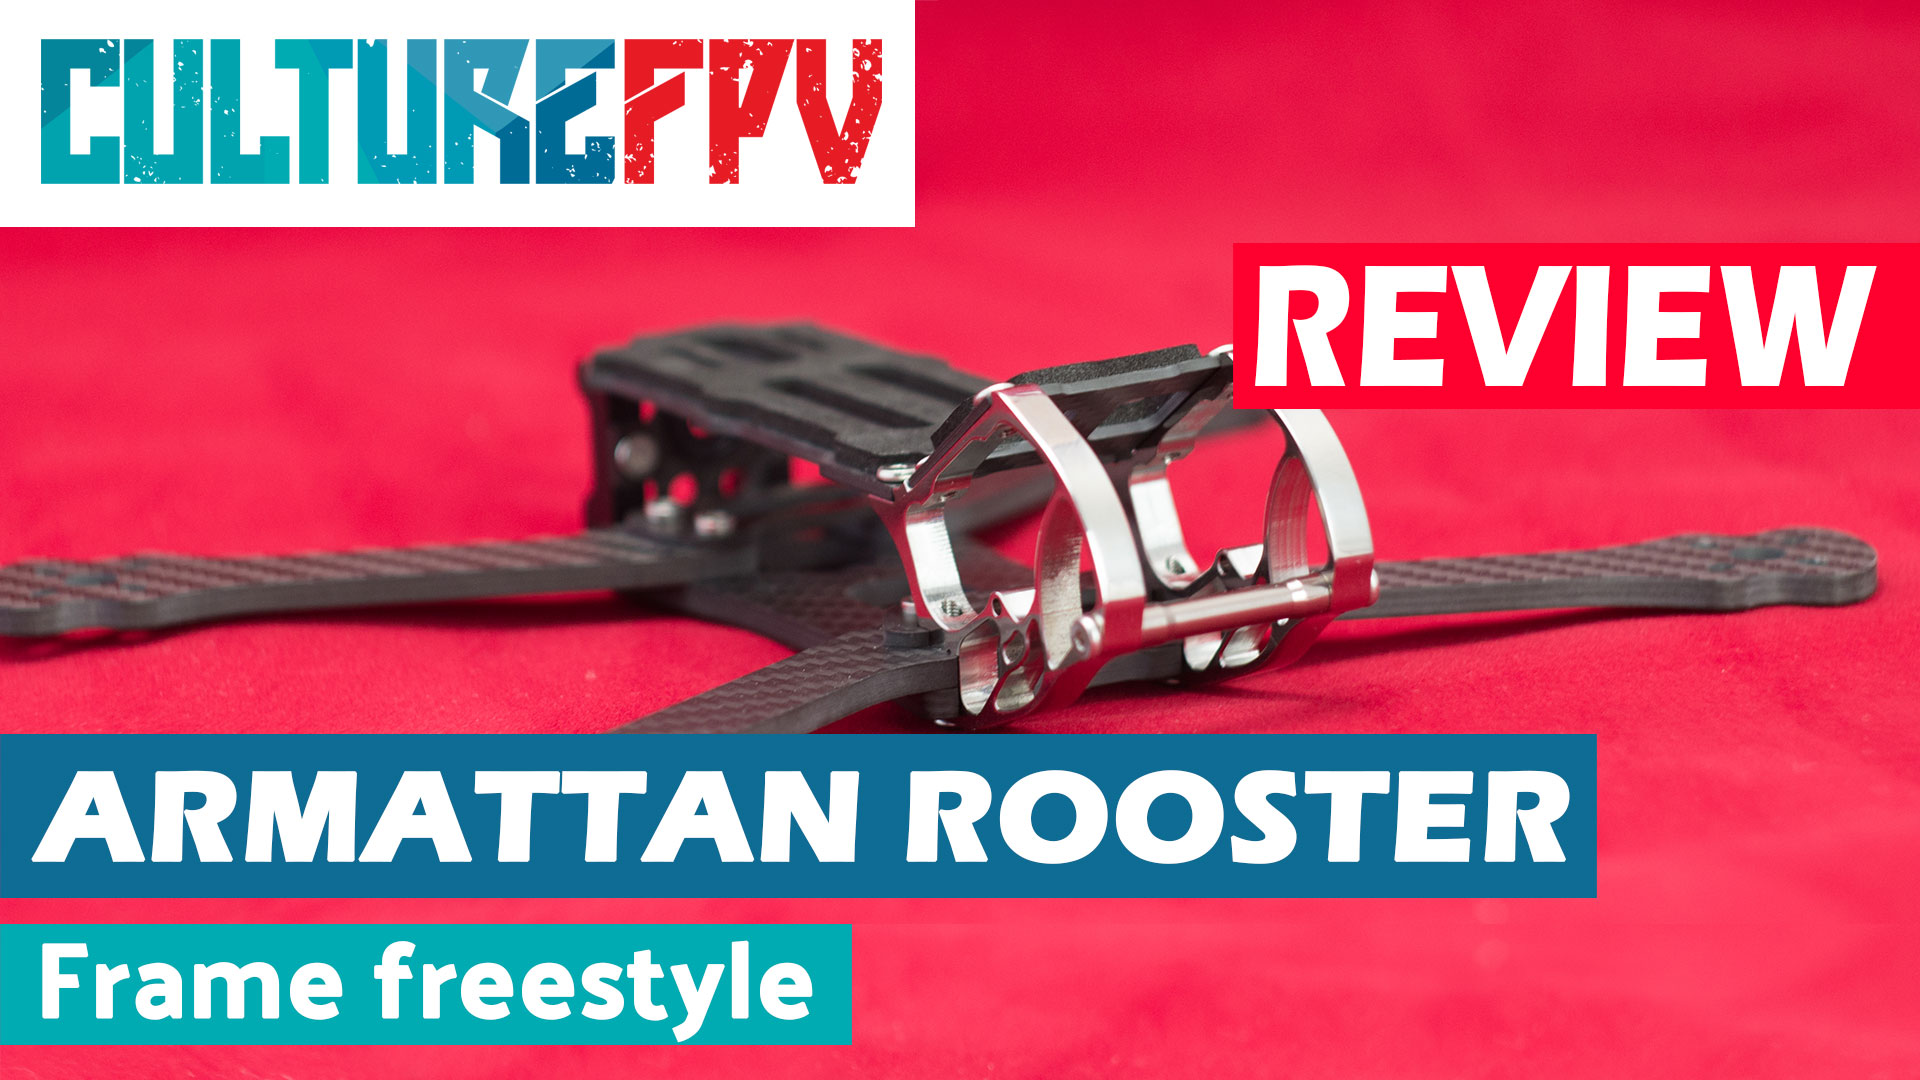 Armattan Rooster